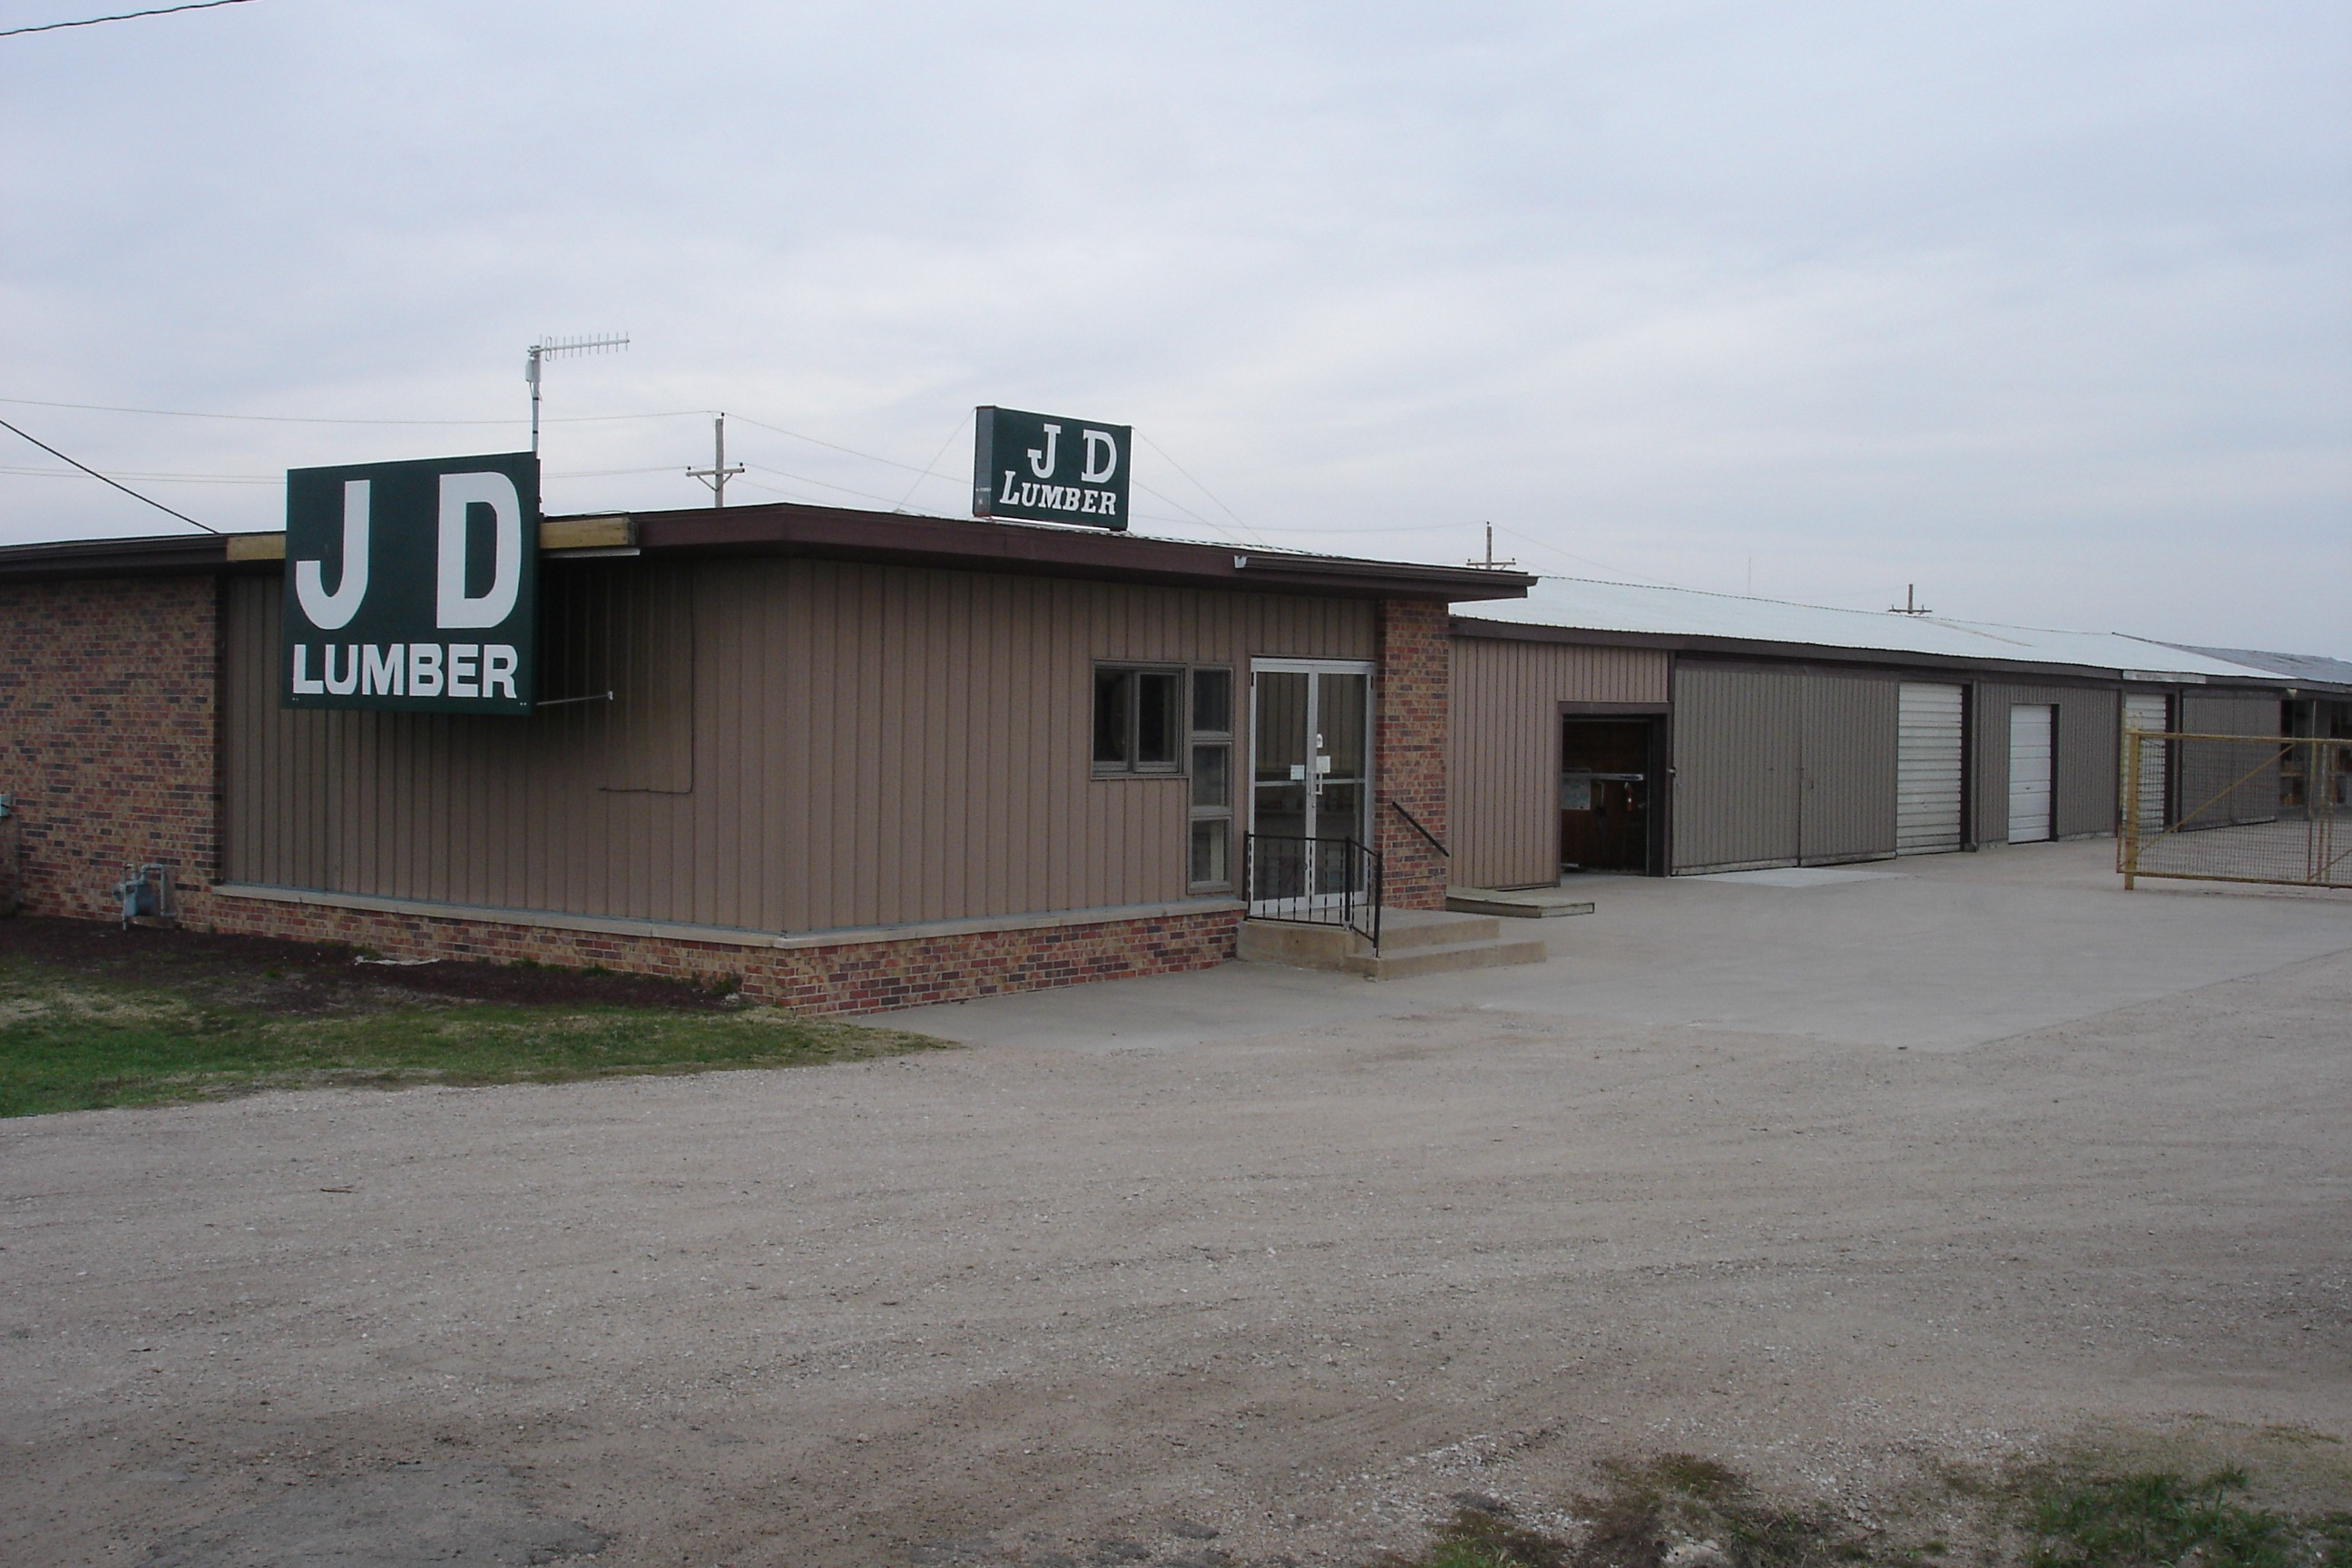 A picture of the J D Lumber's store